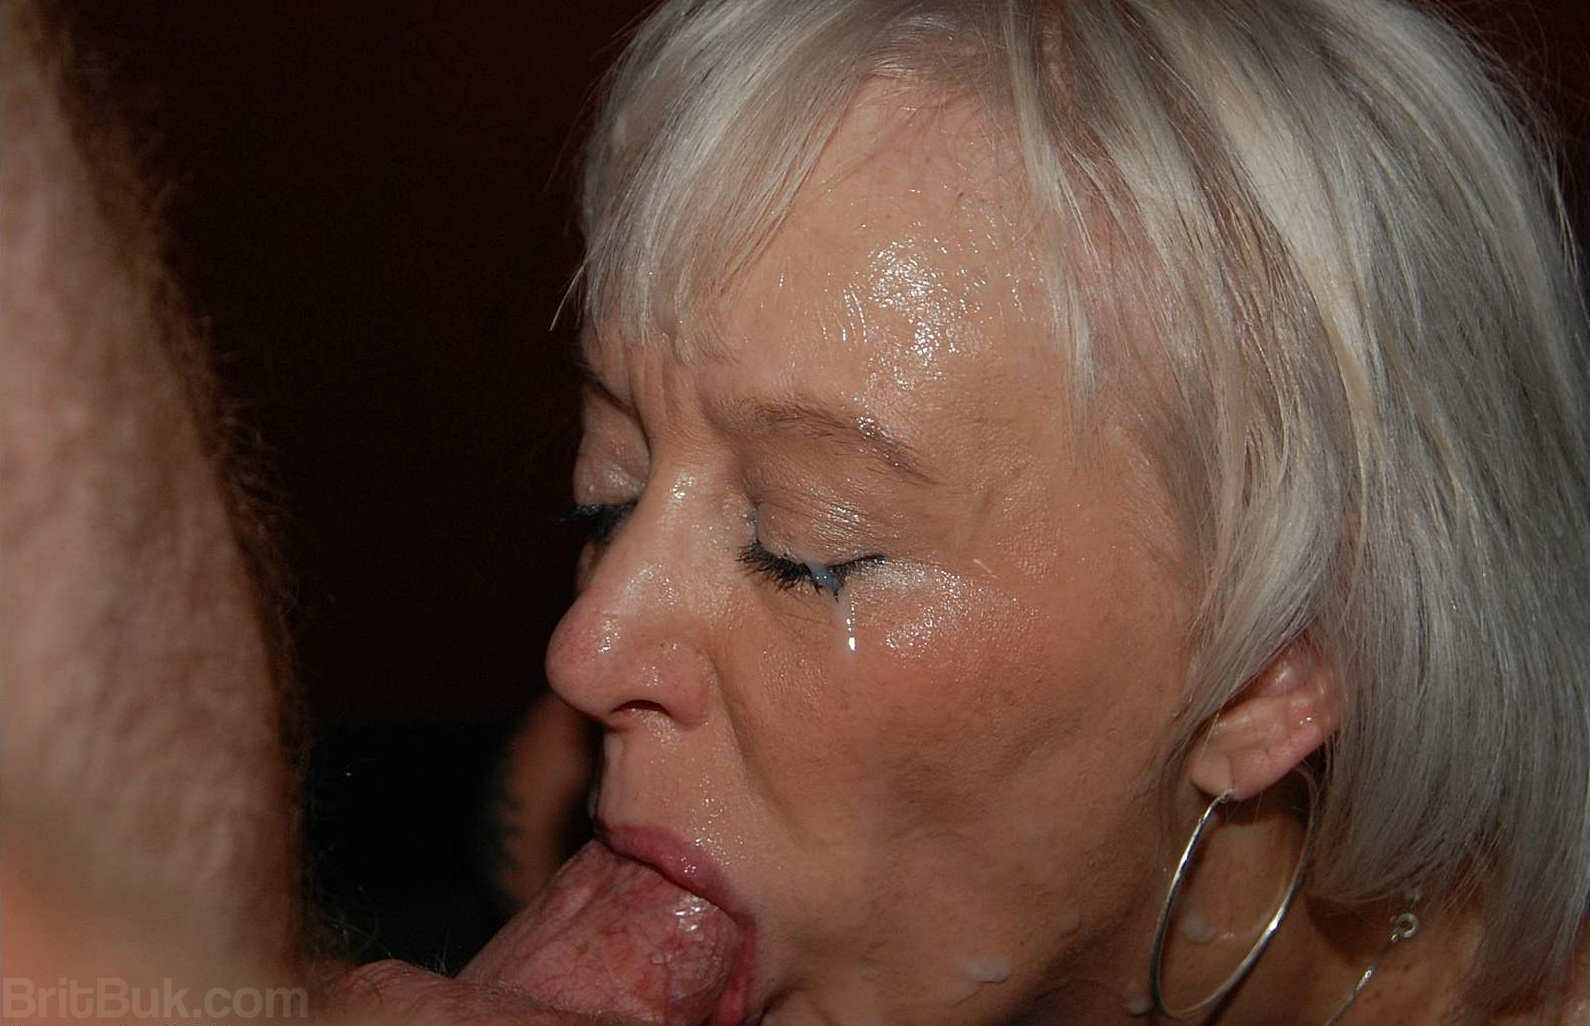 Share your gilf cum pic series